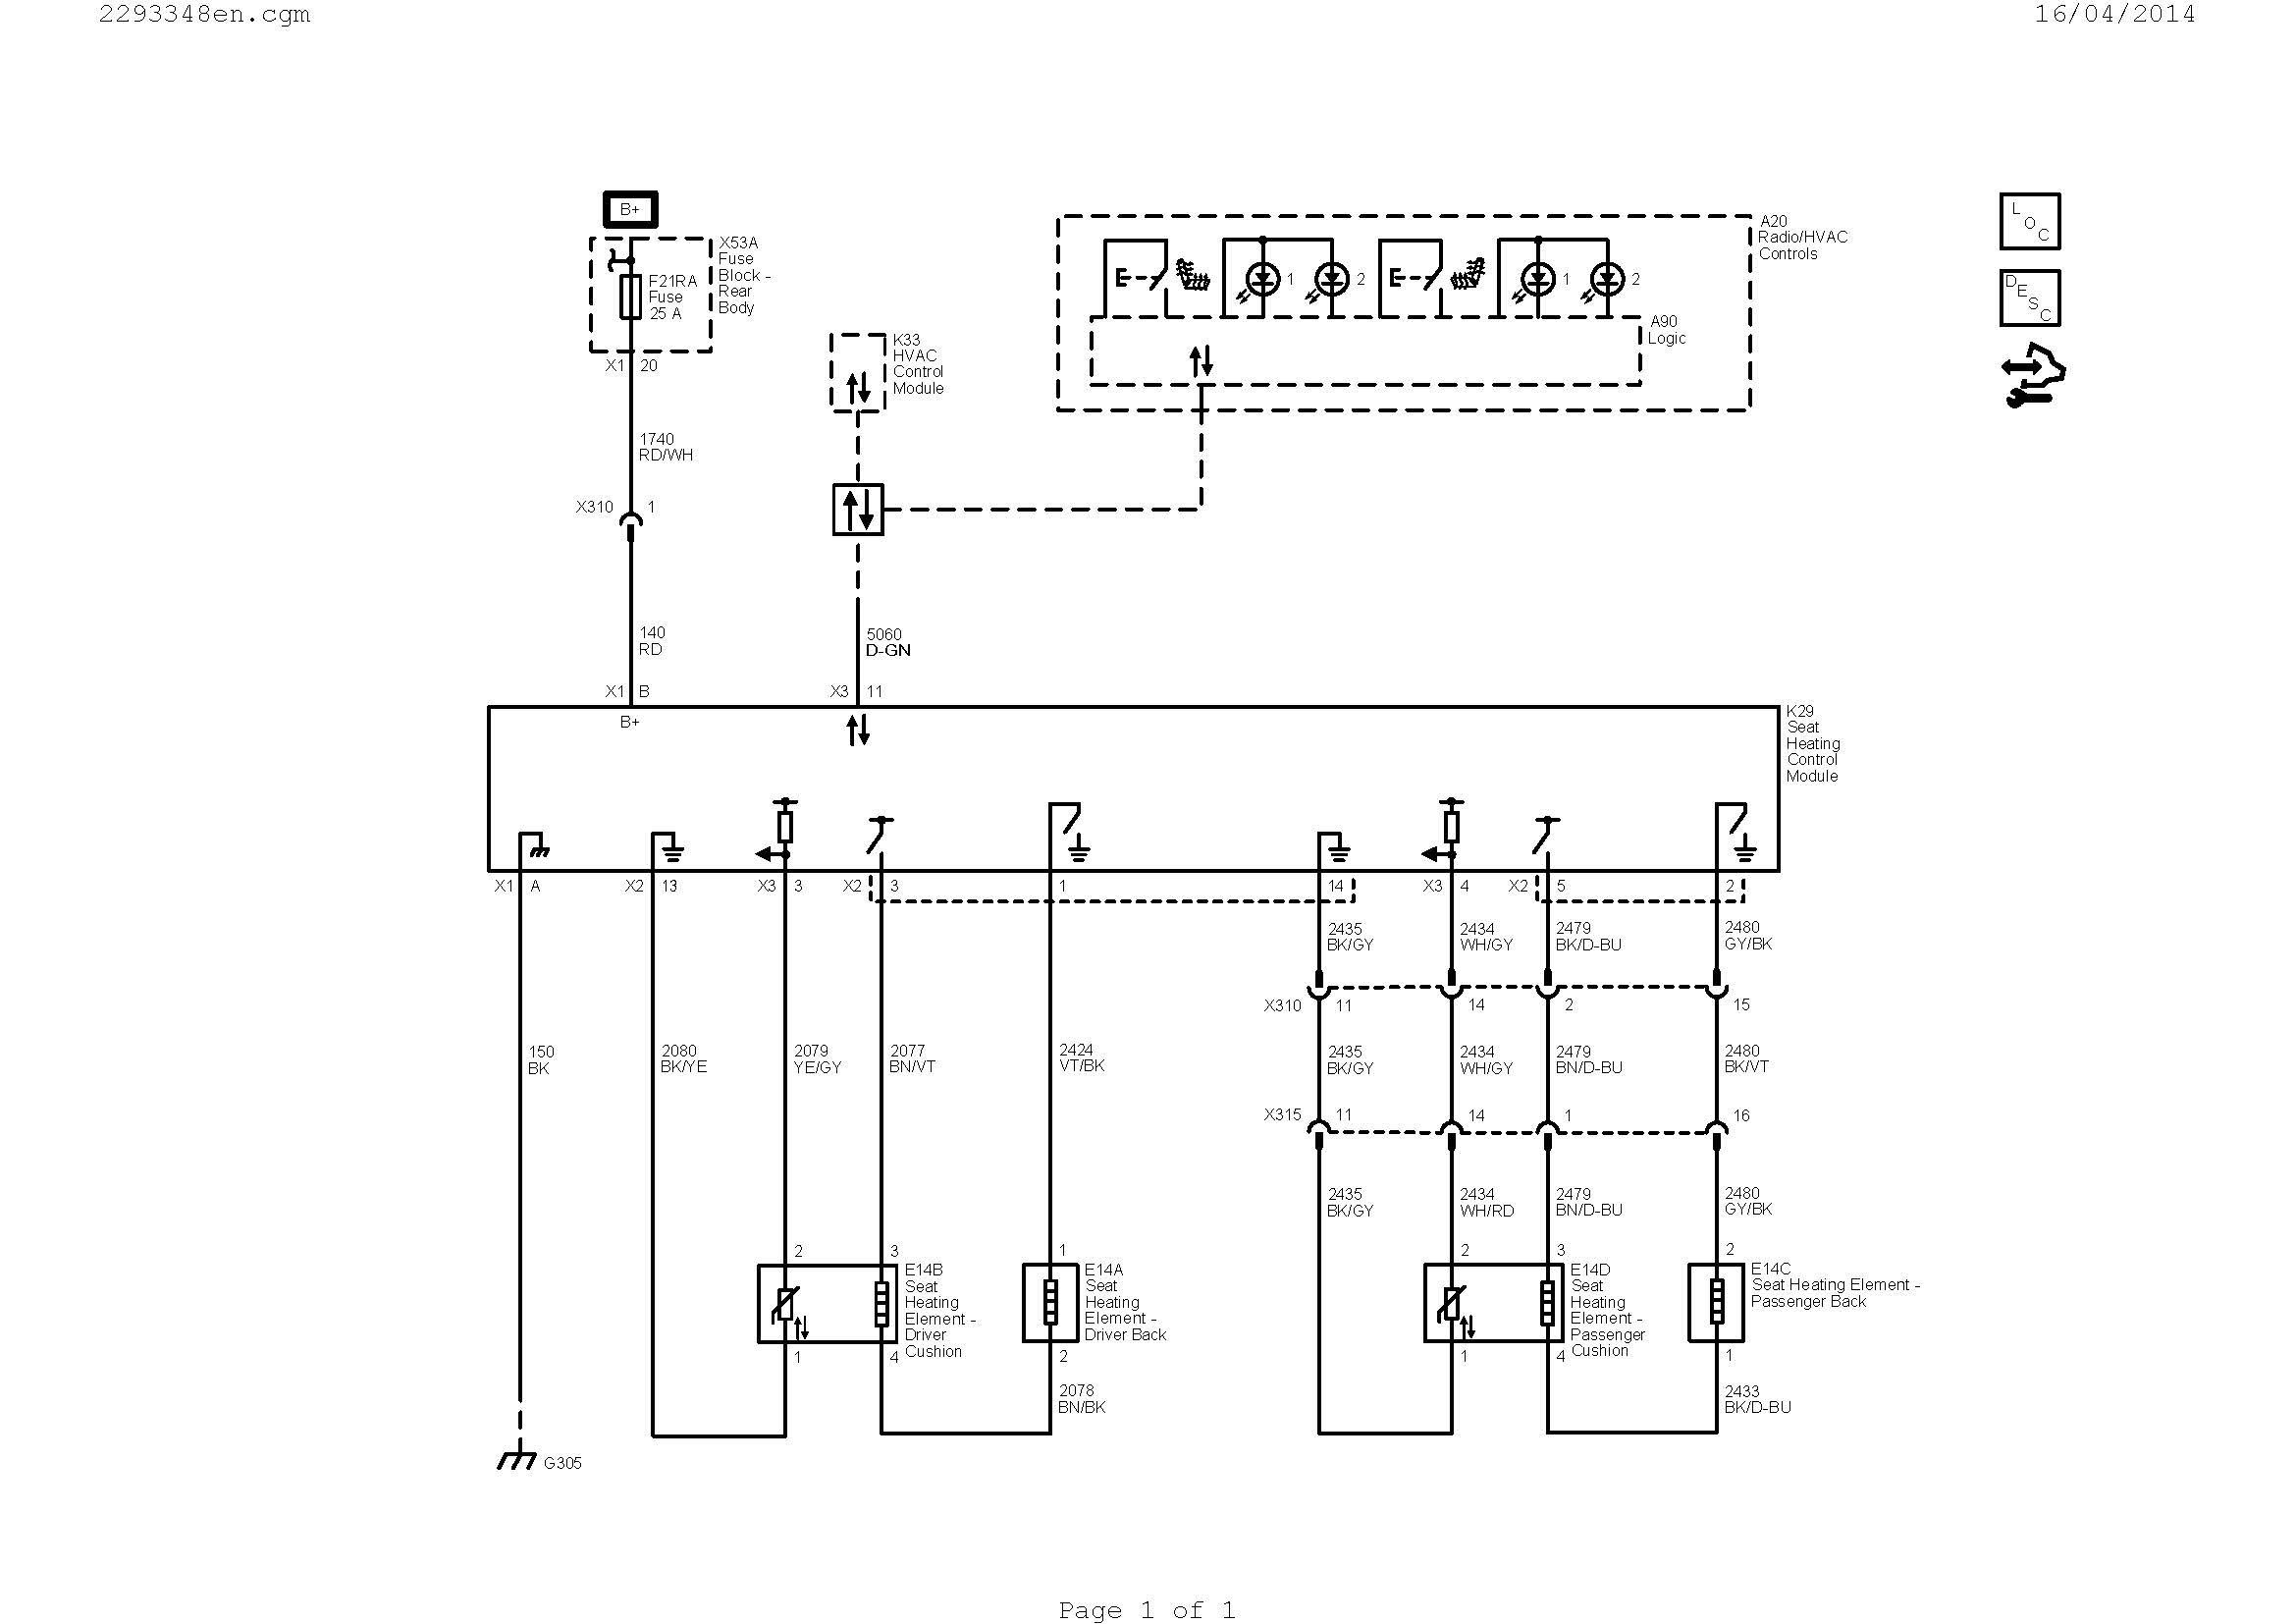 mobile home thermostat wiring diagram Download-7 wire thermostat wiring diagram Download Wiring A Ac Thermostat Diagram New Wiring Diagram Ac 19-s